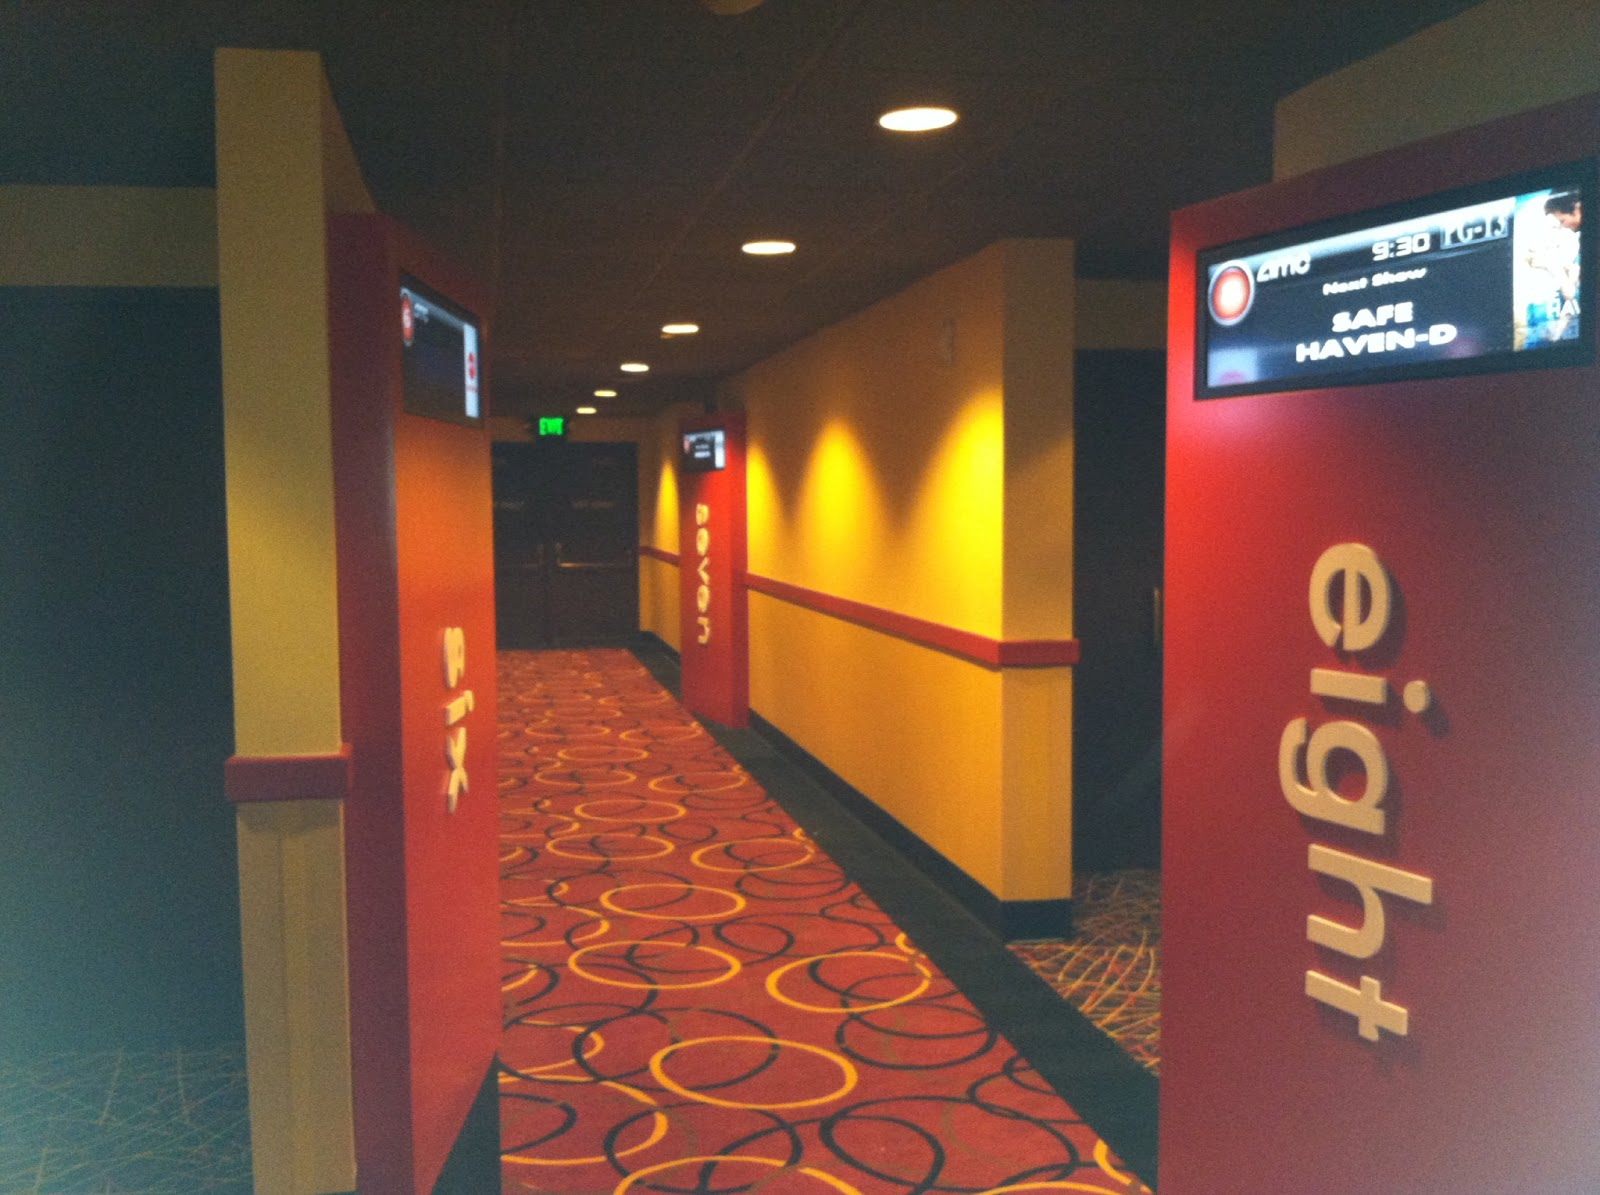 AMC Marlton 8 in Marlton, NJ - get movie showtimes and tickets online, movie information and more from Moviefone.